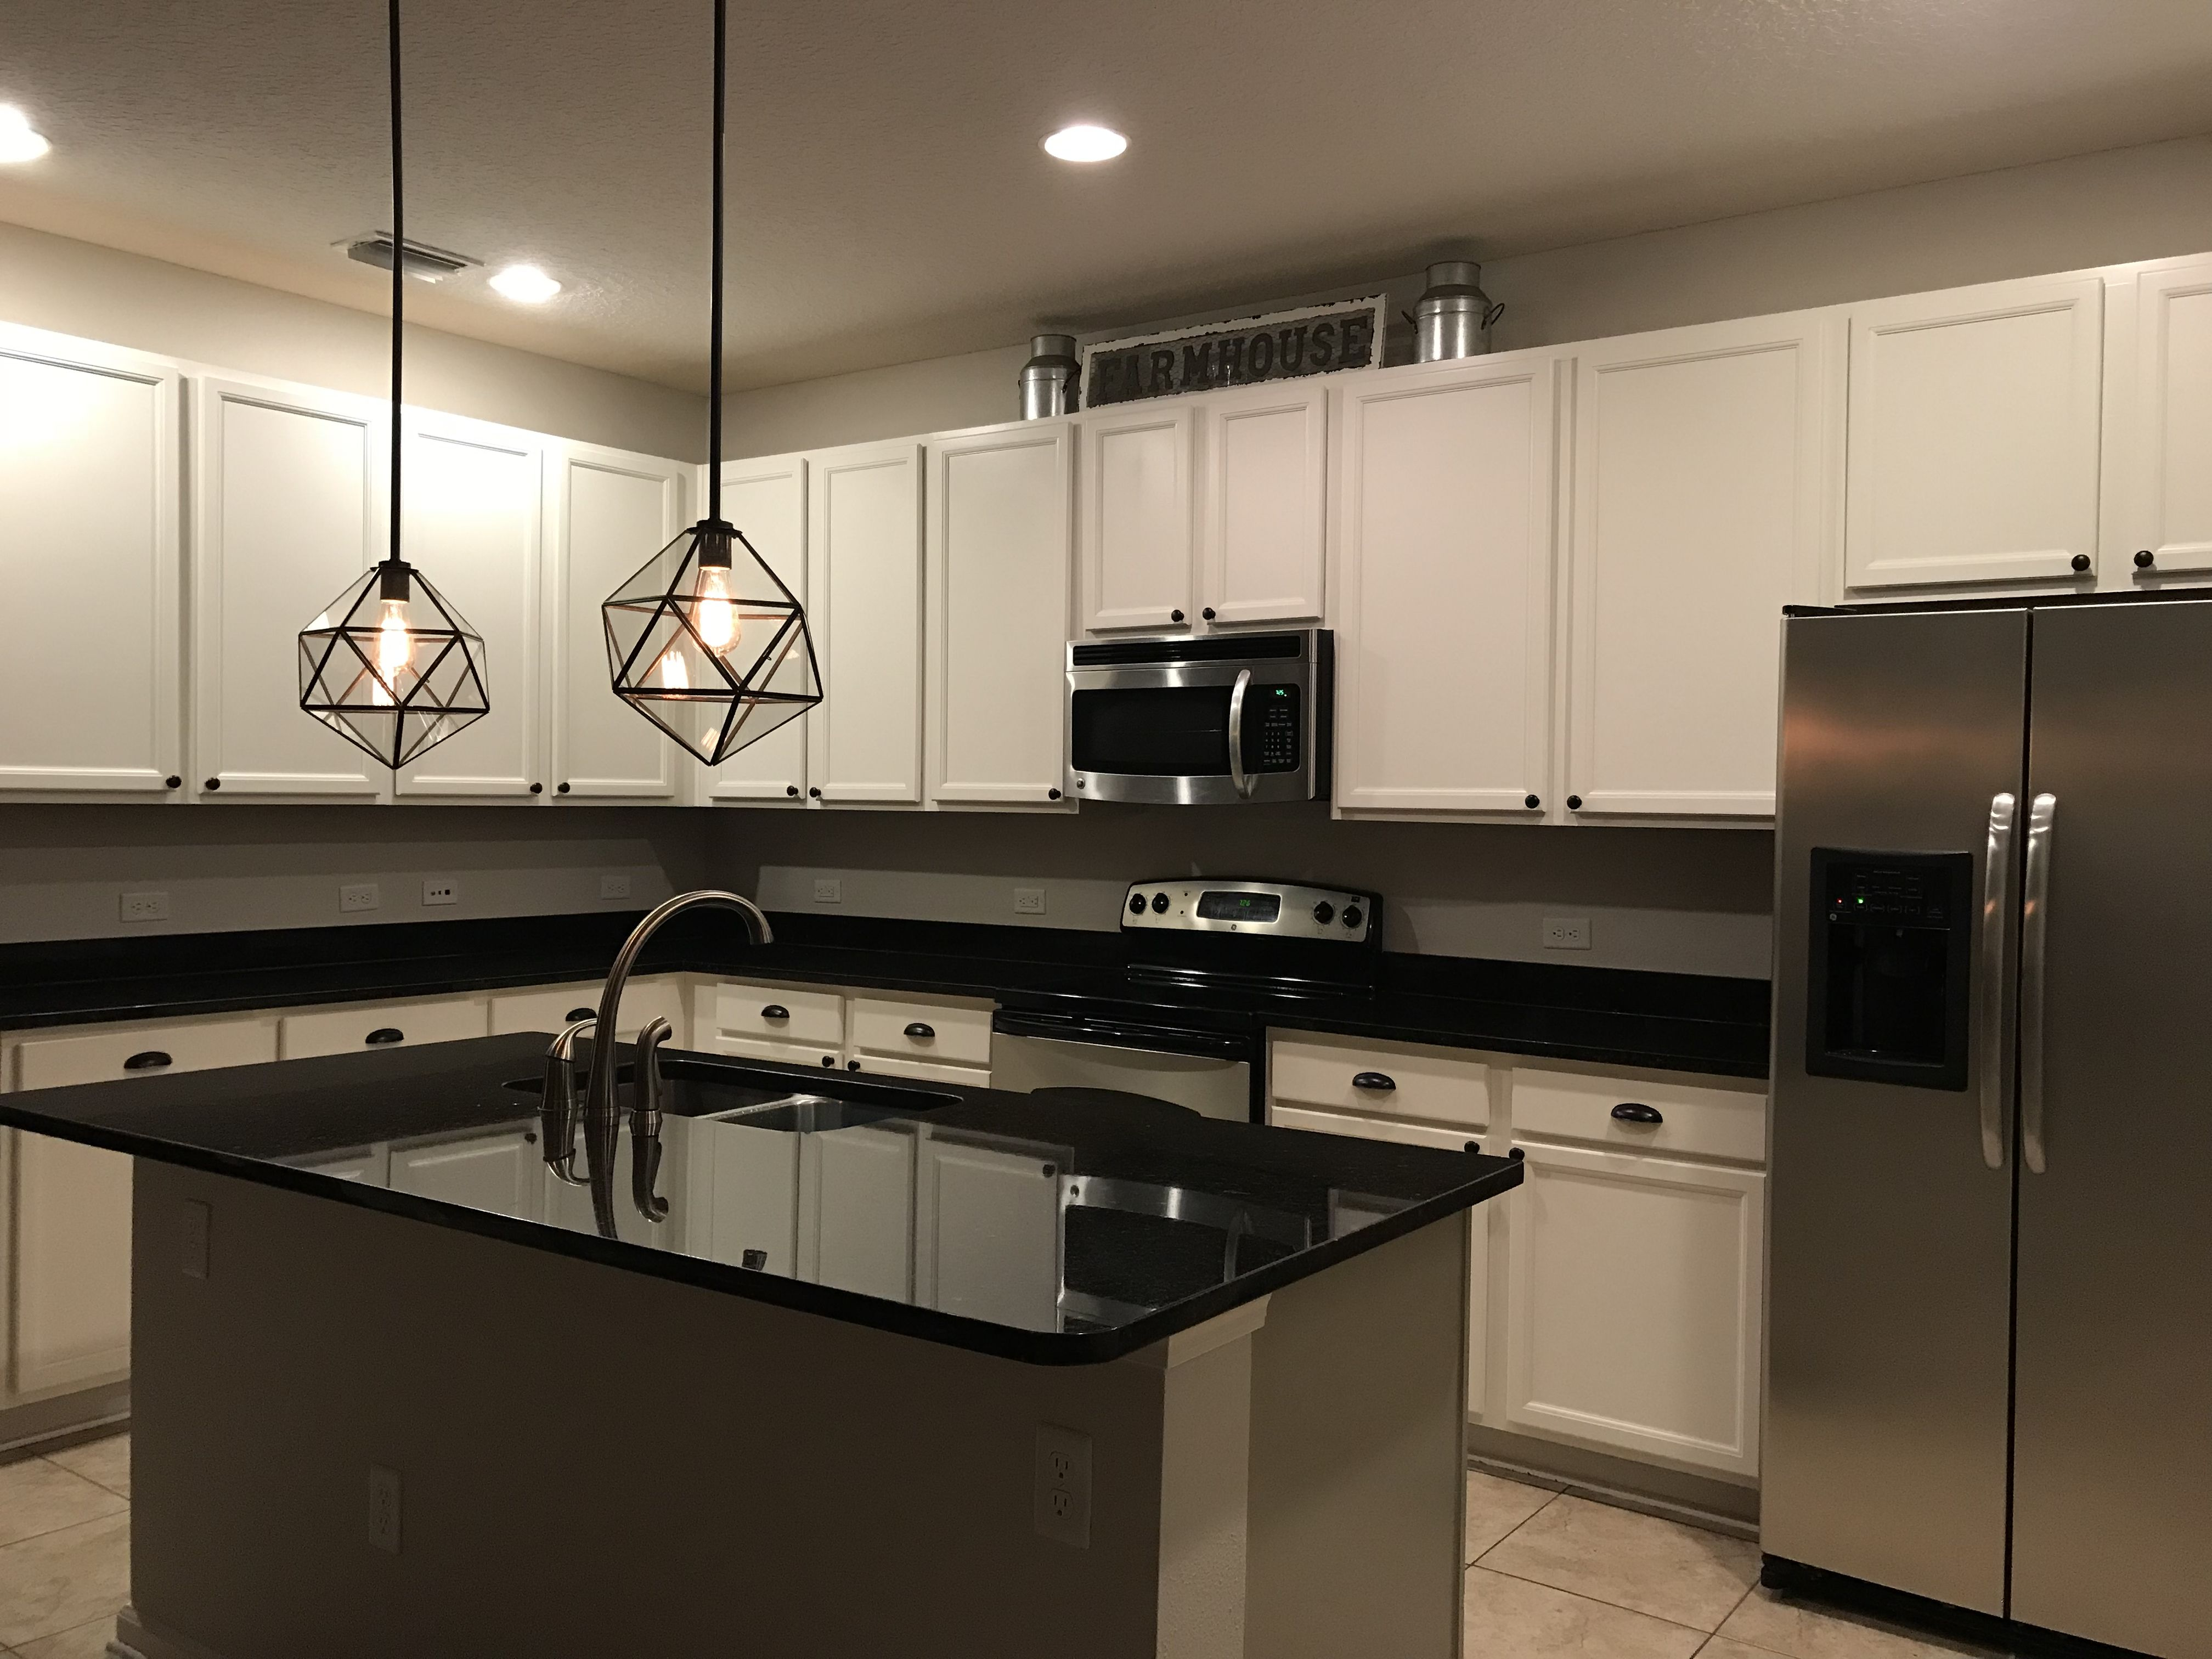 Kitchen Renovation Kitchen Renovation Painting Cabinets Cabinet Paint Colors